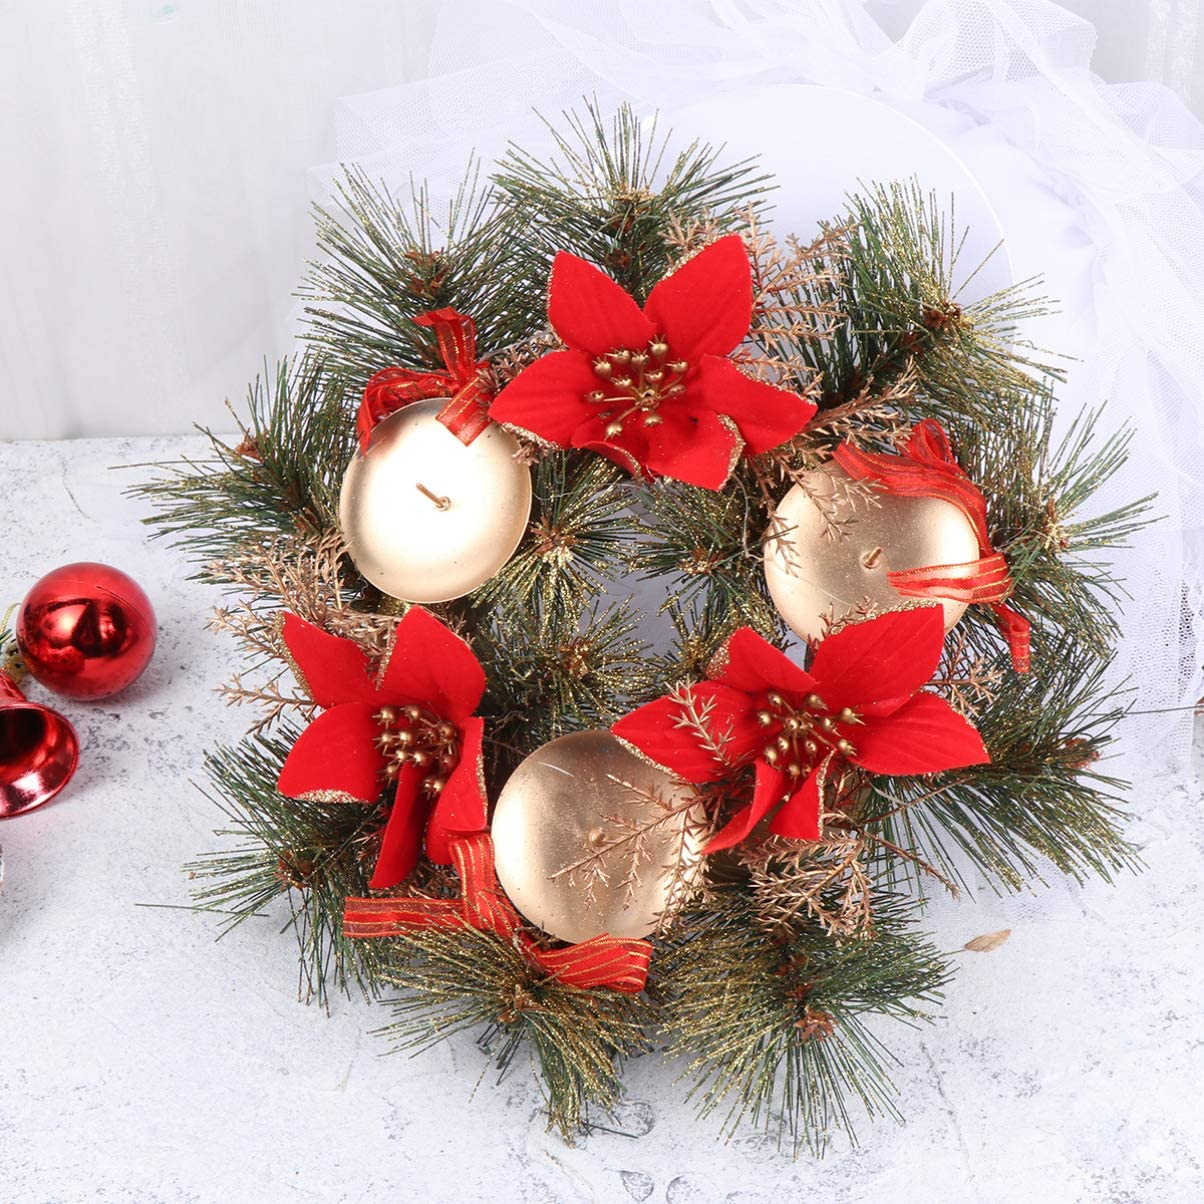 Red VOSAREA Christmas Candle Holder Christmas Candle Wreaths Fake Poinsettia Pine Picks Garland Xmas Tealight Holder Christmas Table Centerpiece for Xmas Wedding Decoration